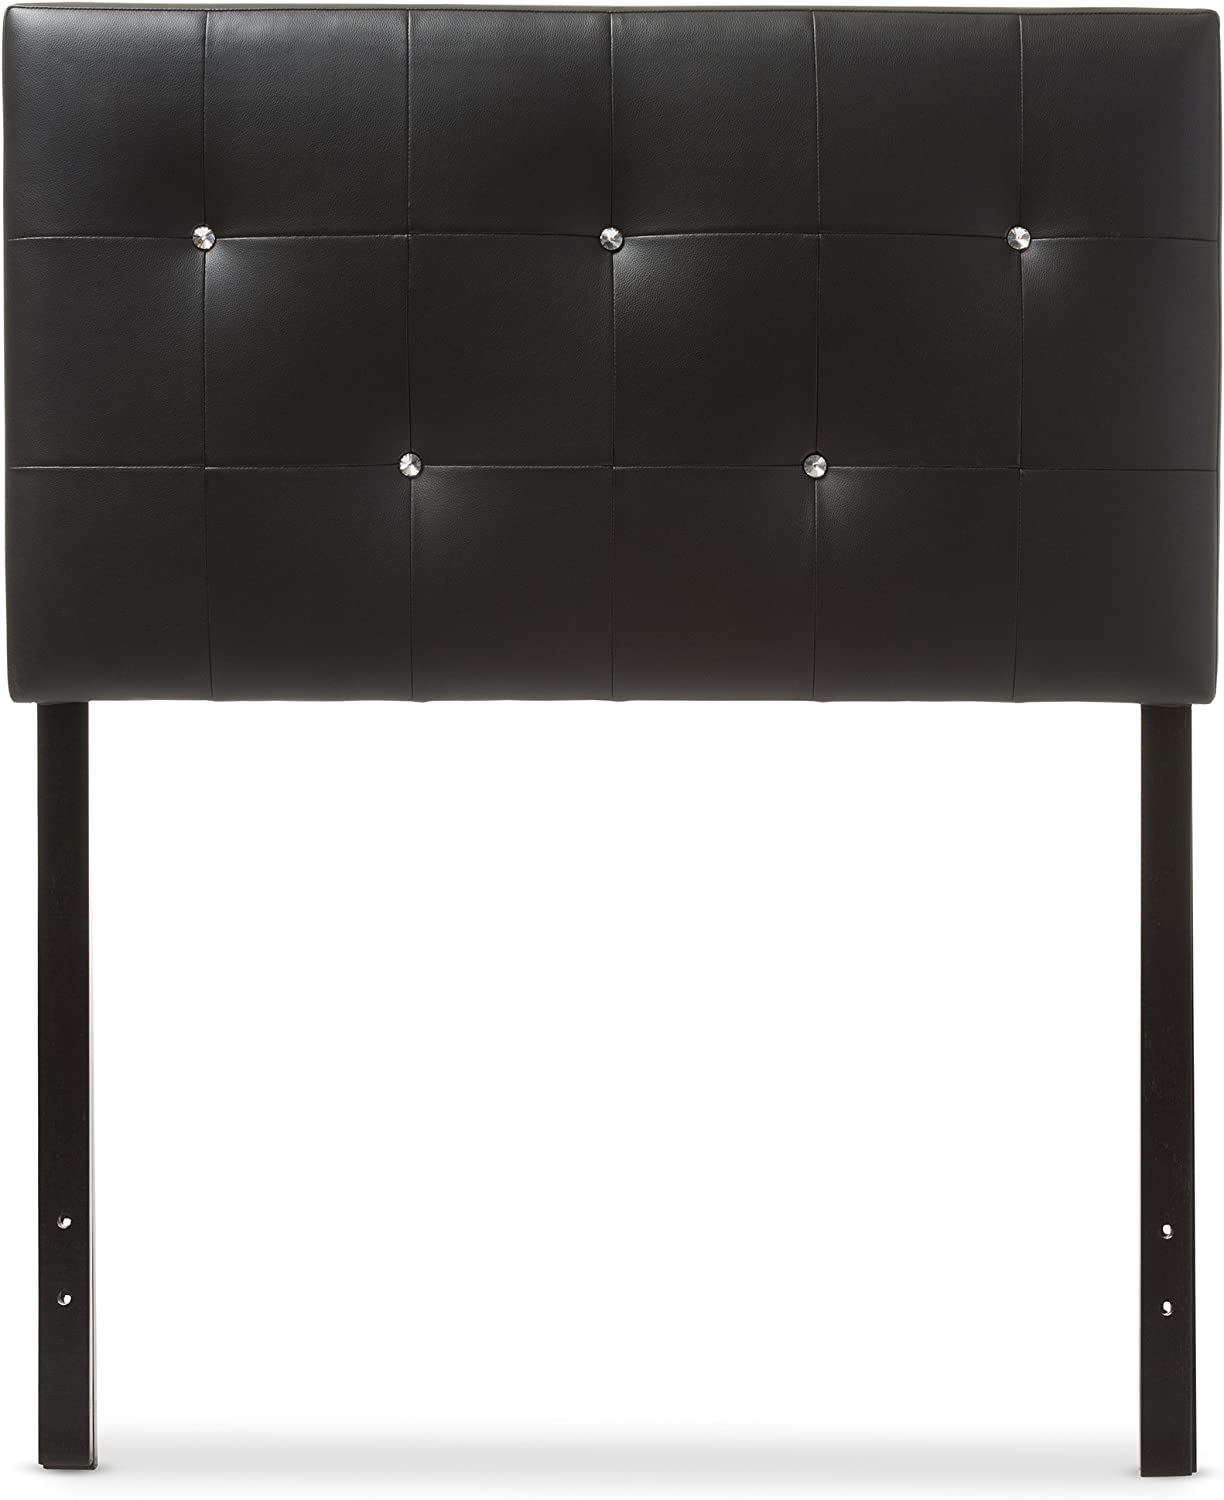 Baxton Studio Josette Modern and Contemporary Black Faux Leather Upholstered Headboard, Twin